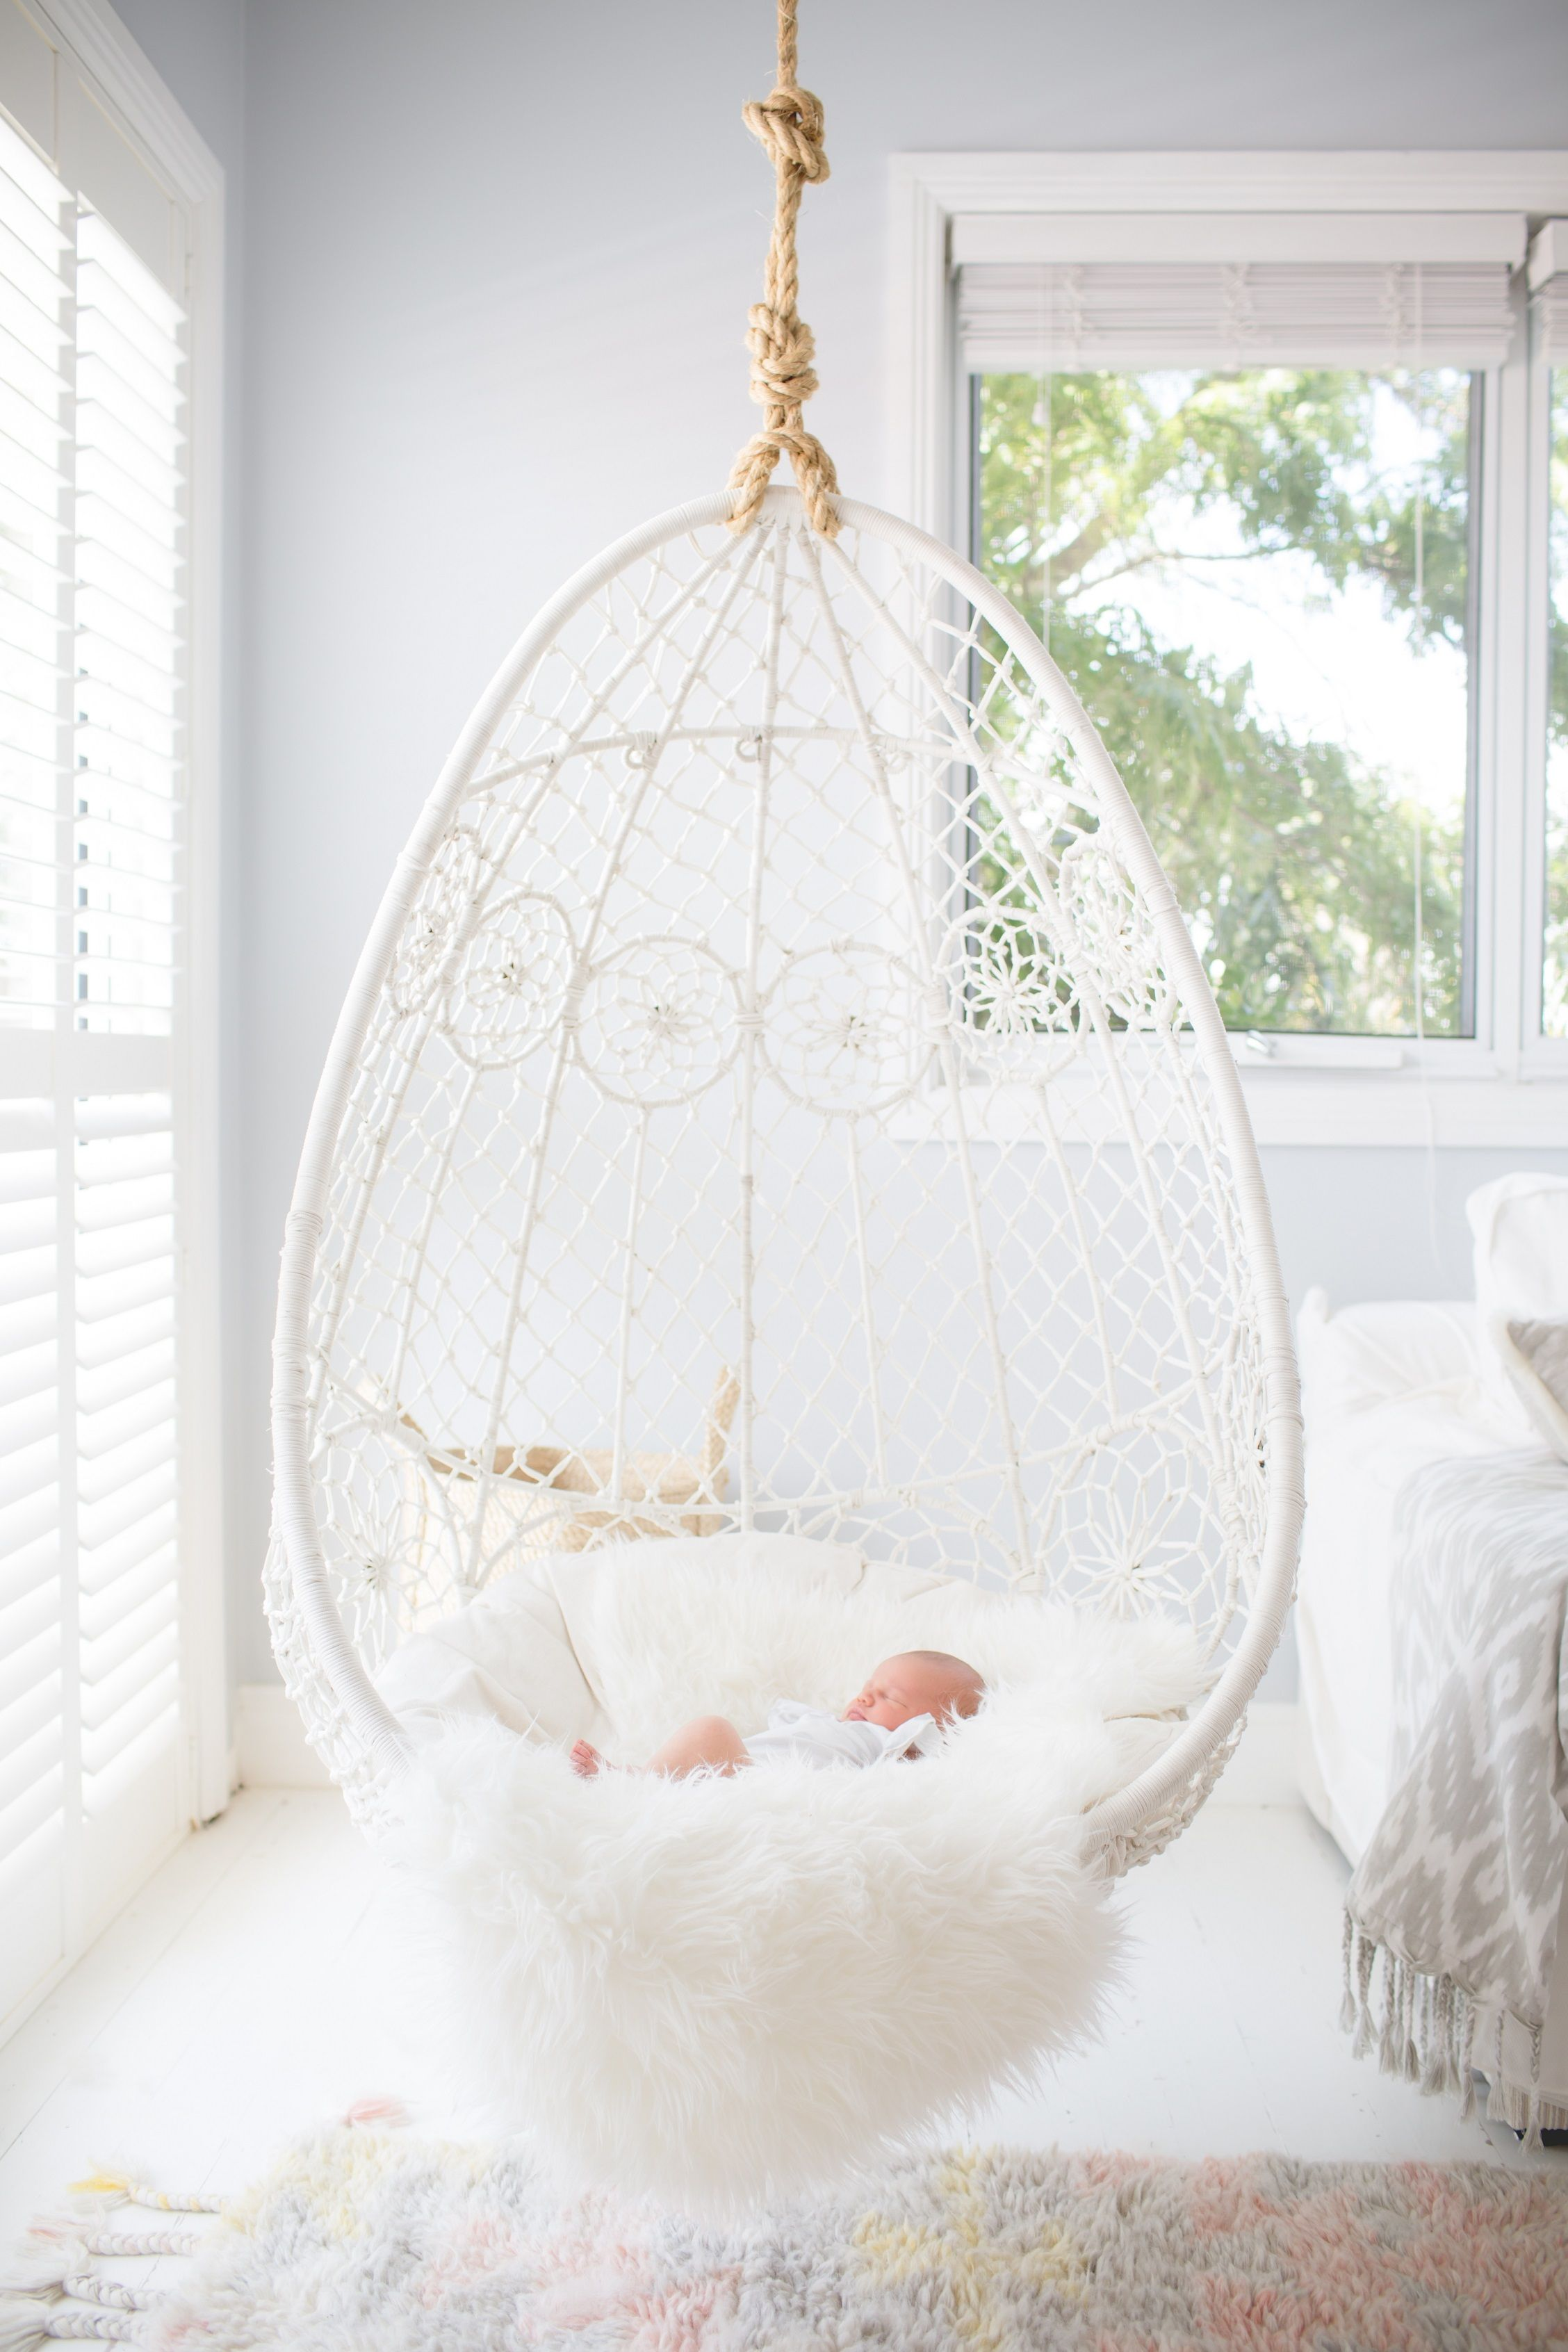 Macrame swing chair best of bedroom cool hanging swing - Indoor hanging egg chair for bedroom ...